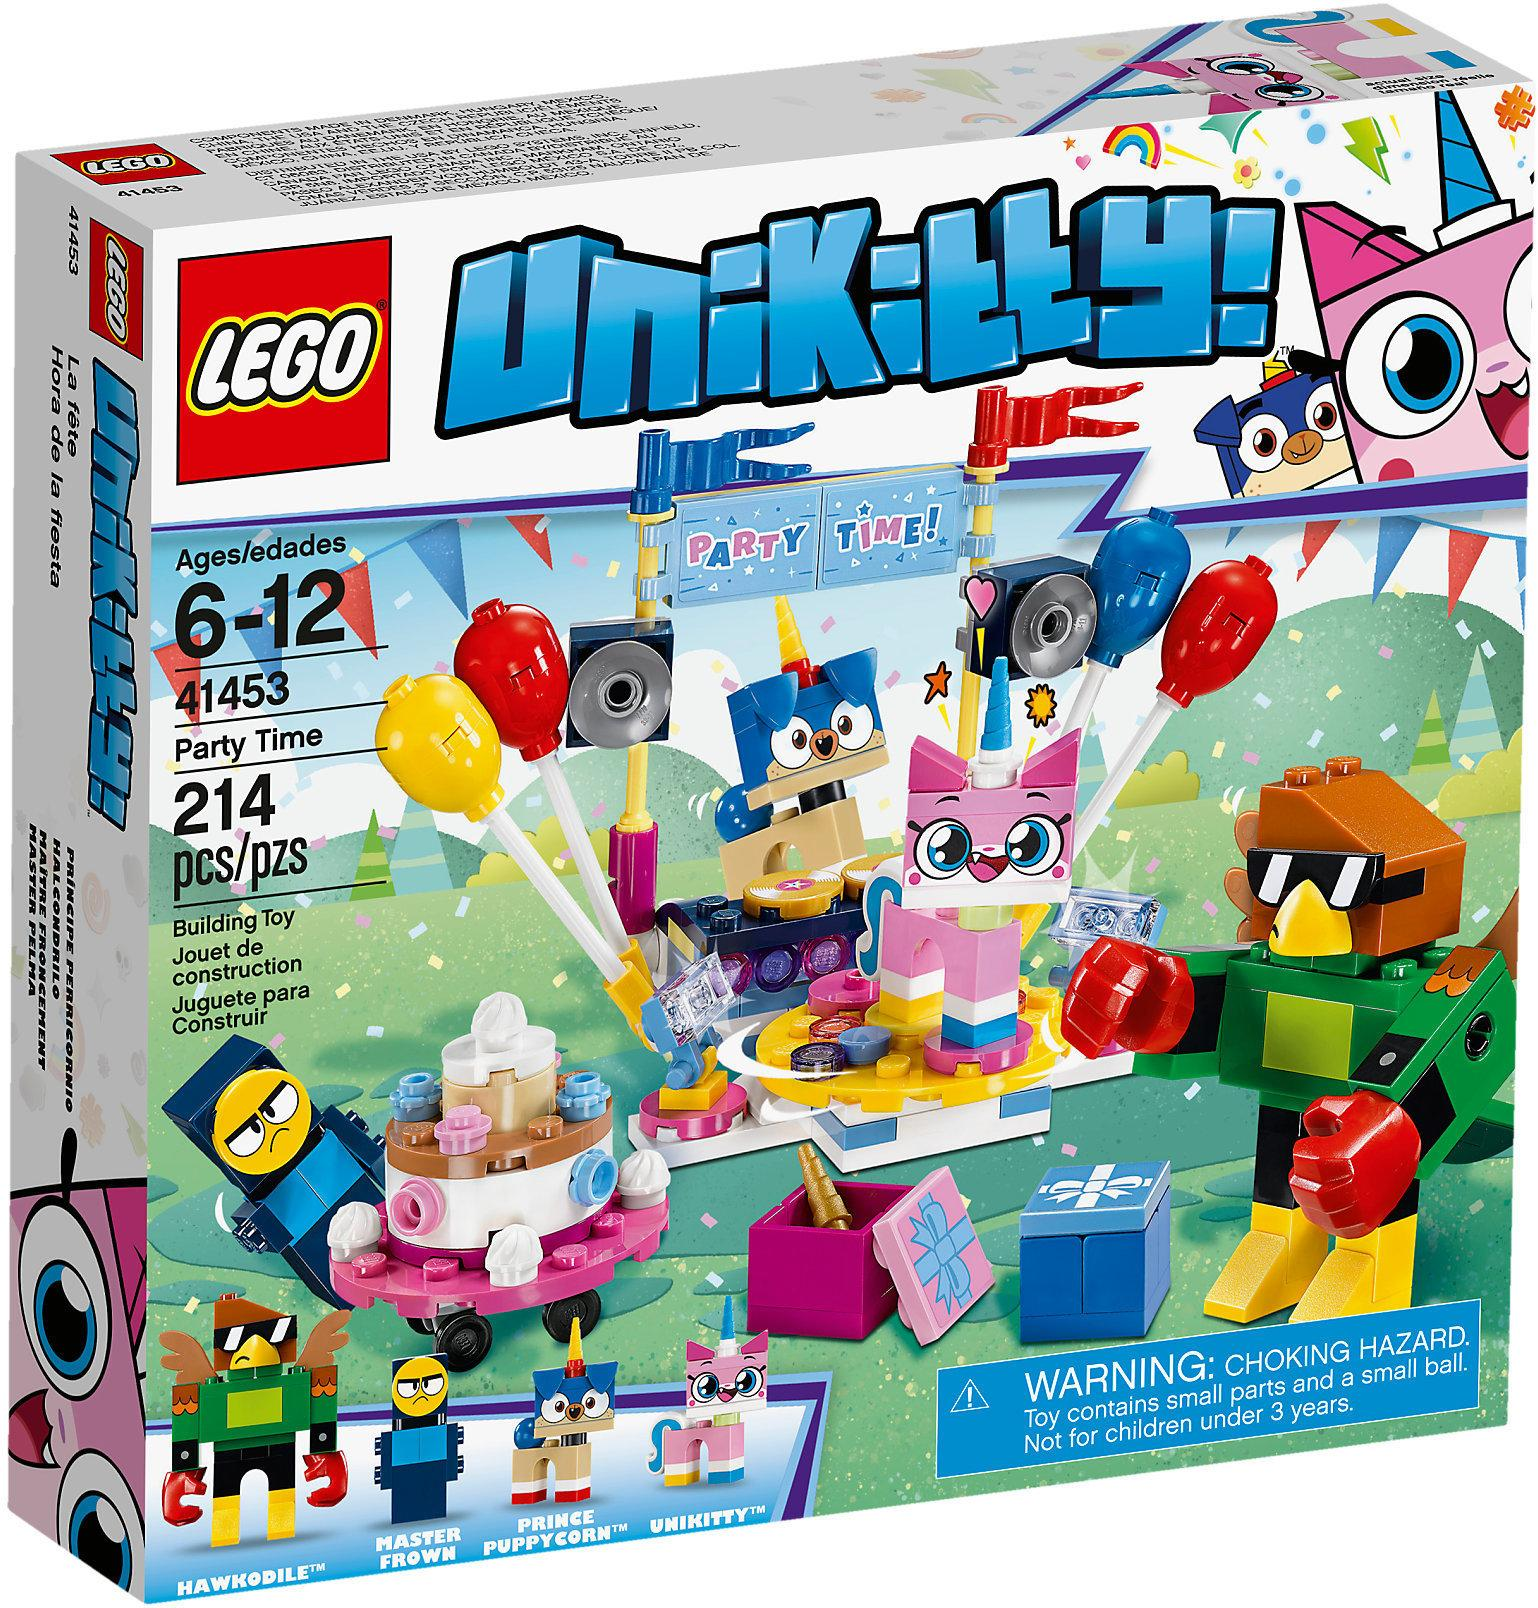 Lego Unikitty Party Time (41453)